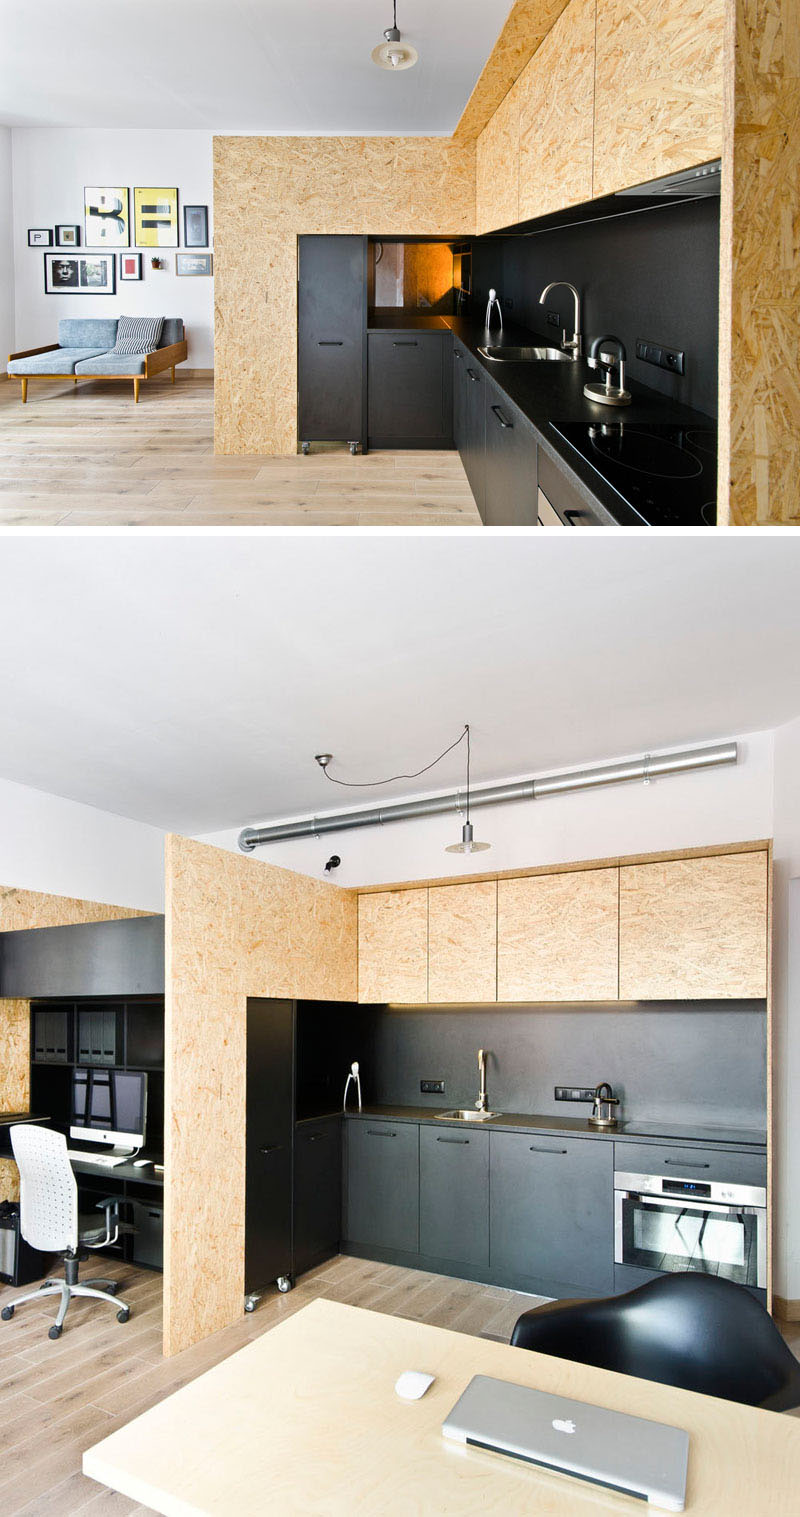 mode:lina architekci designed the interior of a small apartment that includes a black kitchen.